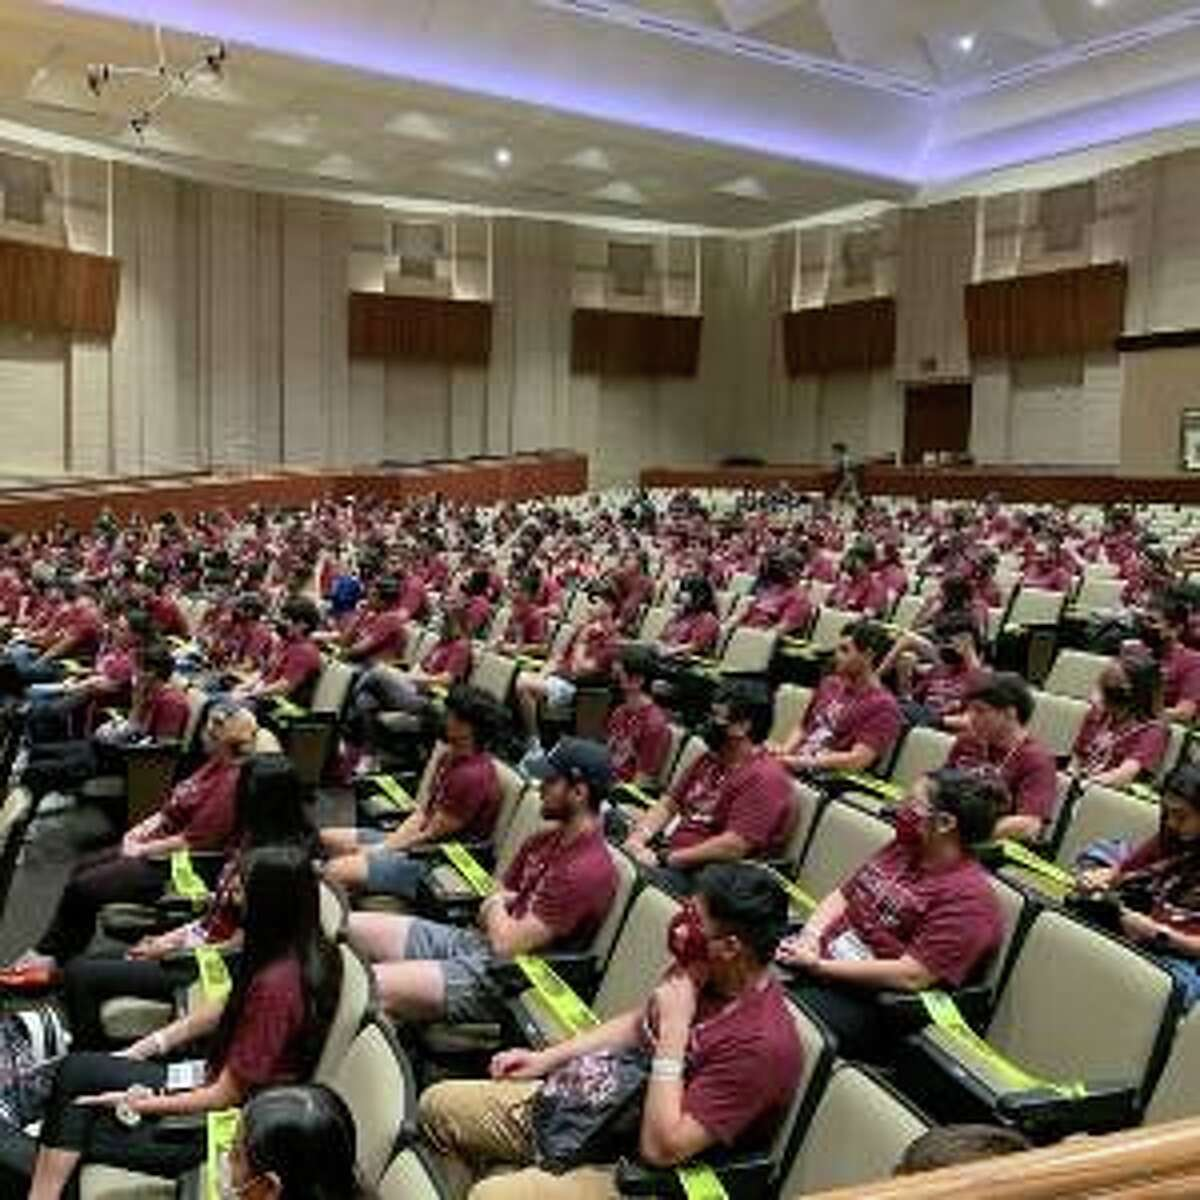 TAMIU students participate in Dusty Camp - a two-day student orientation experience.